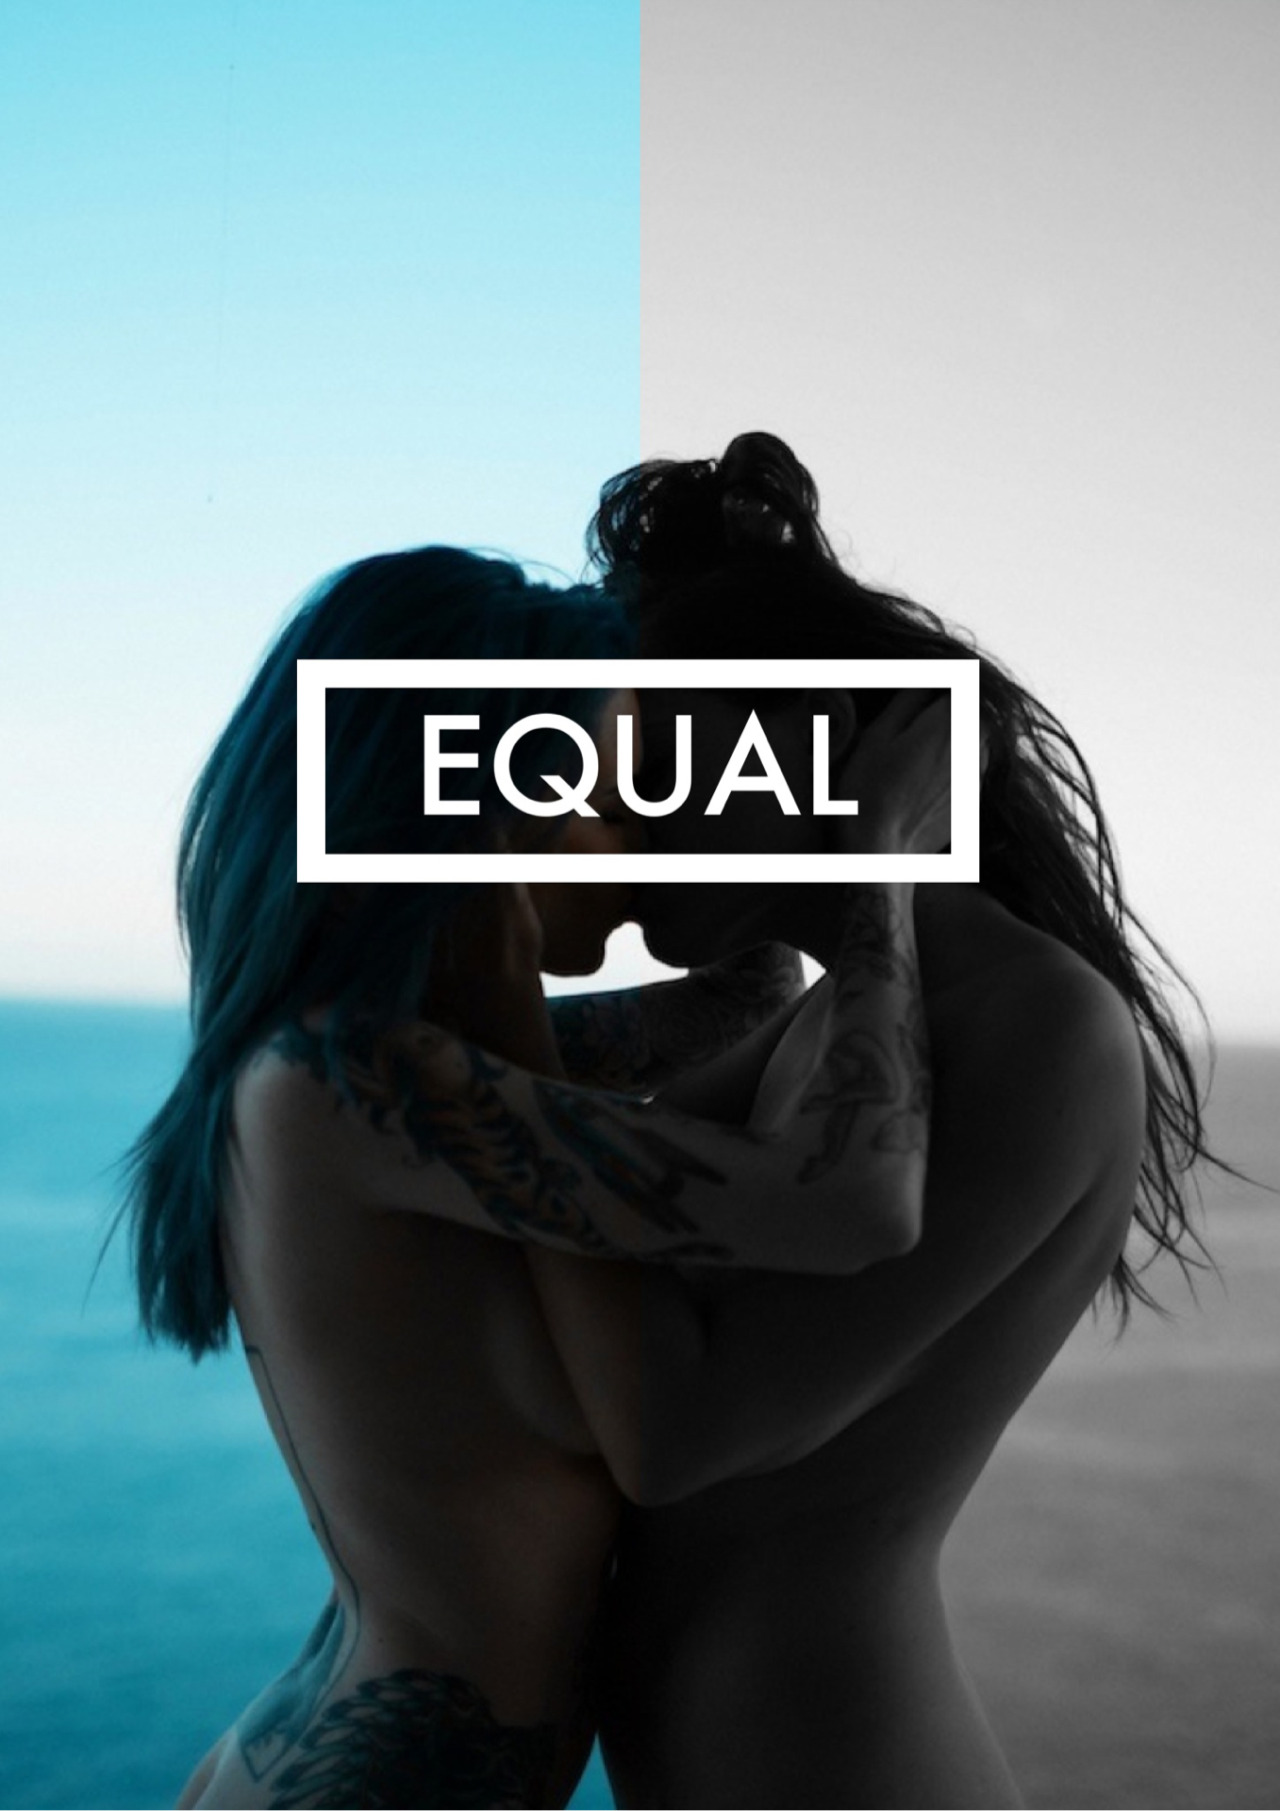 Repeal Prop 8 - Extend Equal Marriage Rights Universally